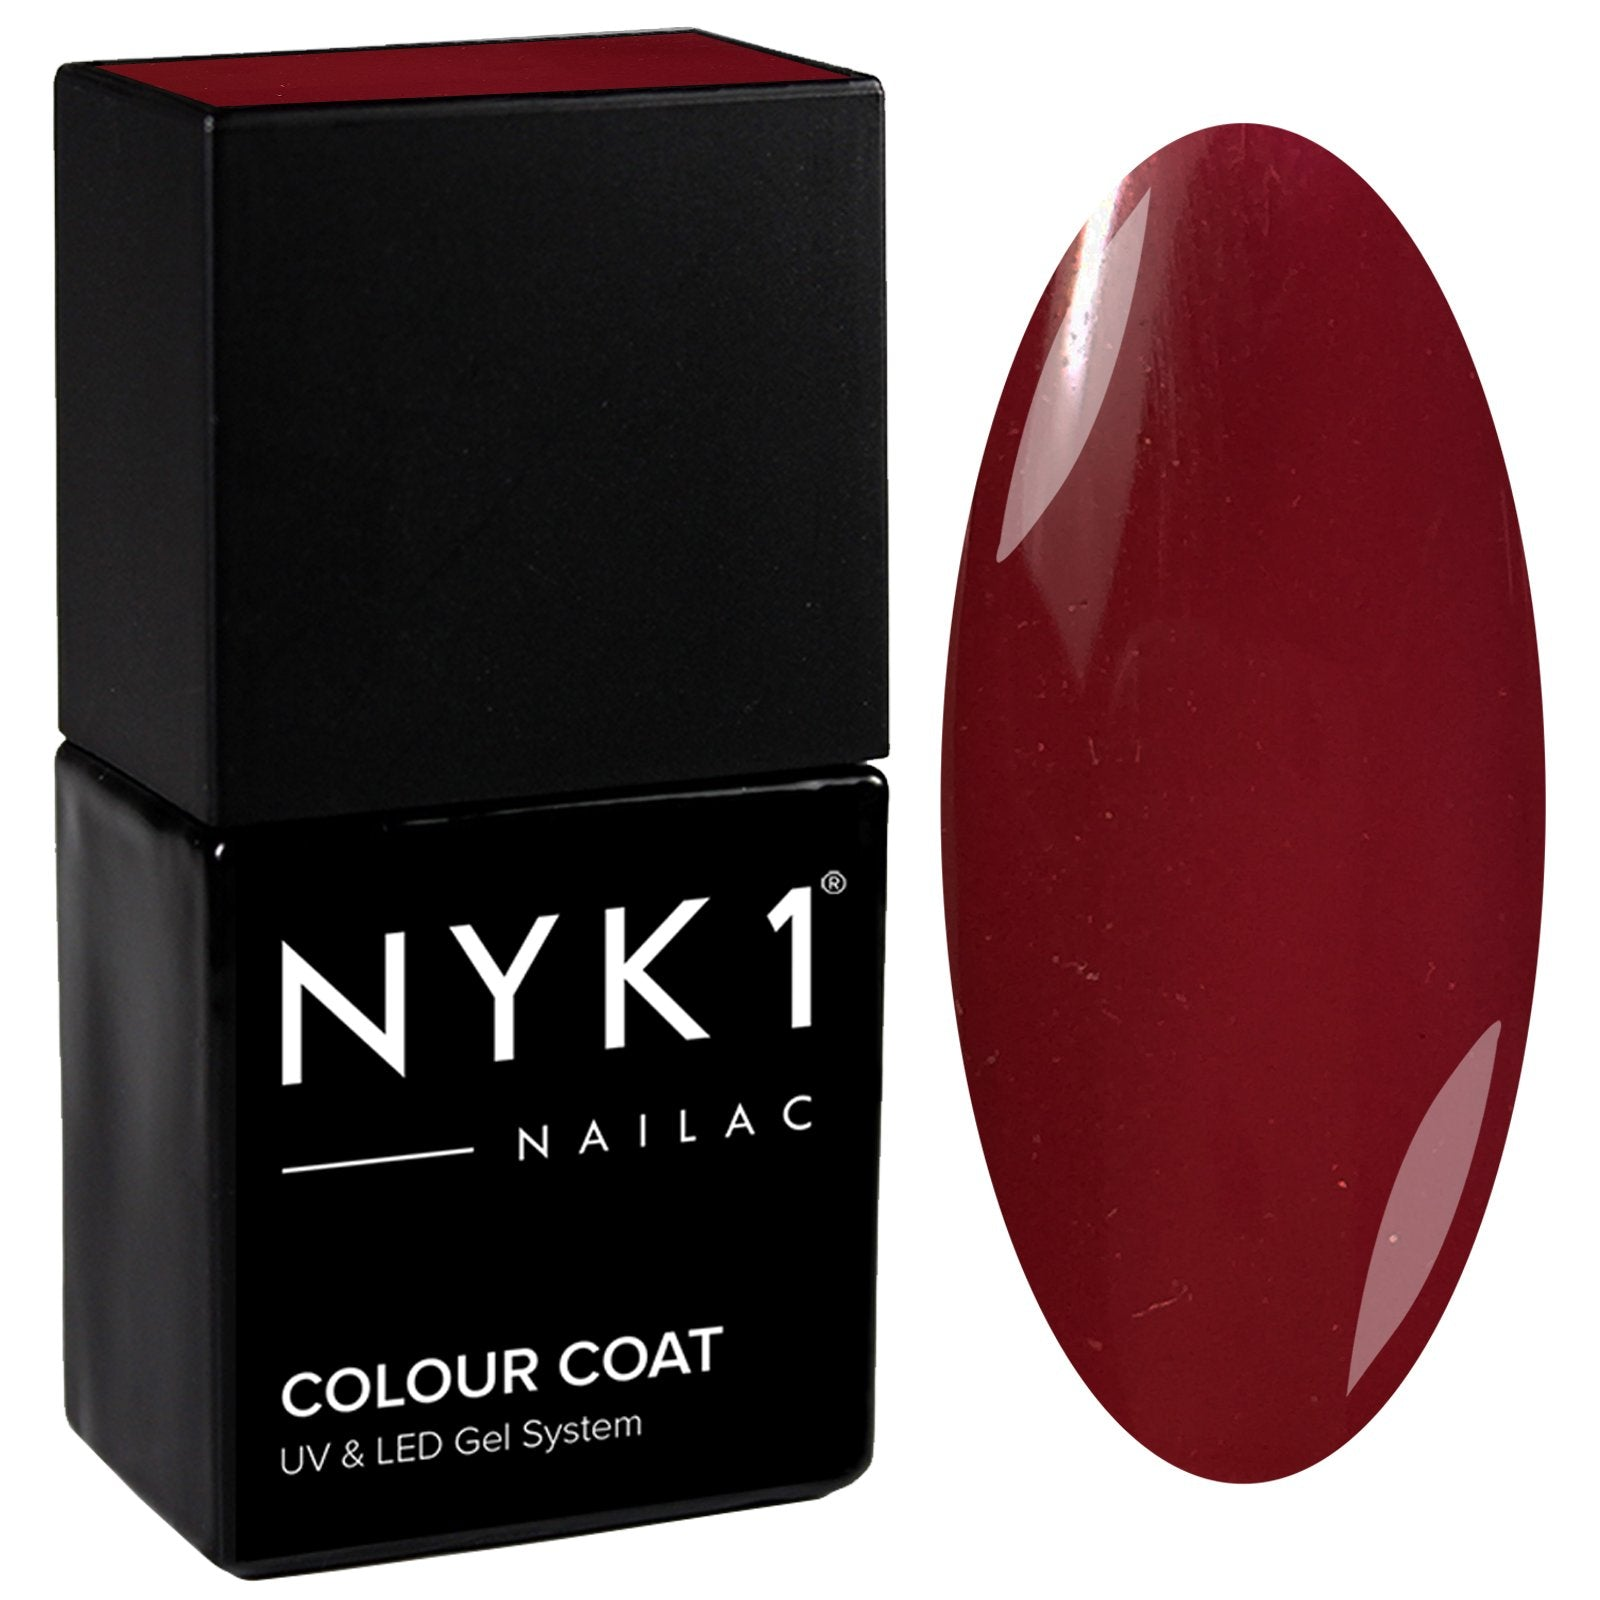 NYK1 Nailac Damson Crush Burgundy Red Gel Nail Polish